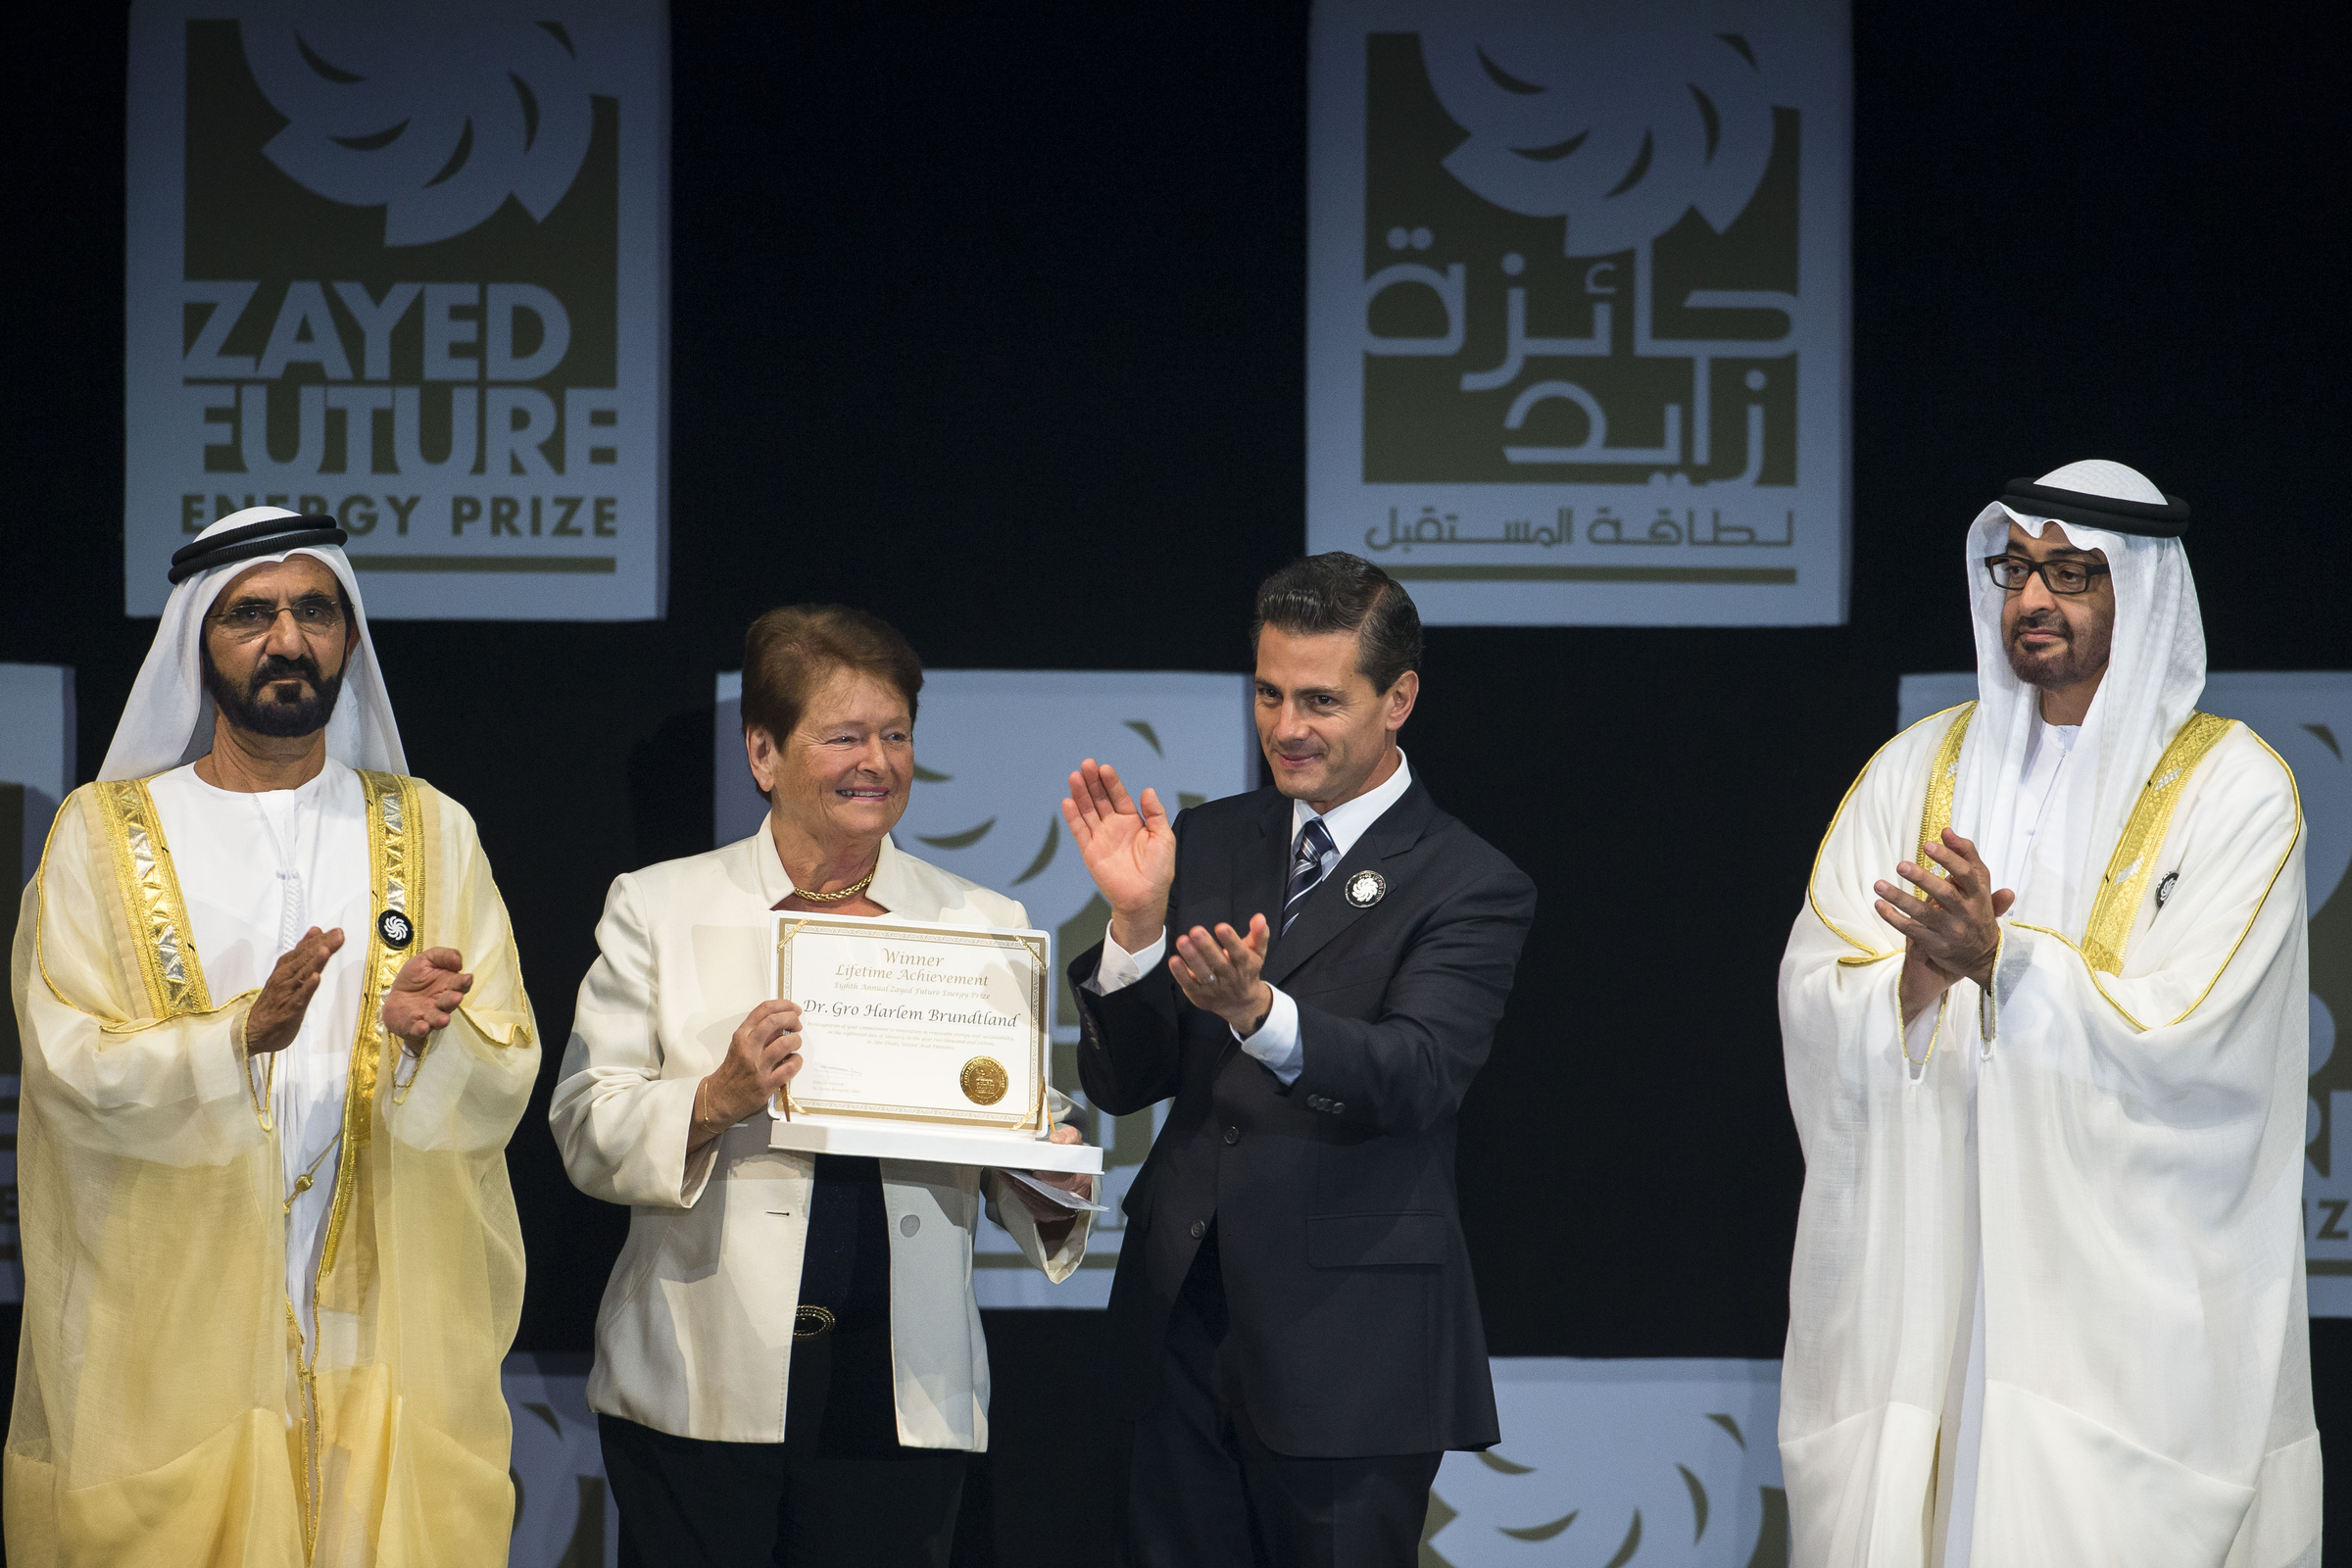 HH Sheikh Mohammed bin Rashid Al Maktoum, Vice-President, Prime Minister of the UAE and Ruler of Dubai (L), HH Sheikh Mohammed bin Zayed Al Nahyan, Crown Prince of Abu Dhabi, Deputy Supreme Commander of the UAE Armed Forces (R), and HE Enrique Pena Nieto, President of Mexico (2nd R), present the Zayed Future Energy Prize Lifetime Achievement award to Dr. Gro Harlem Brundtland, former Prime Minister of Norway, current Special Envoy with the United Nations, and the Deputy Chair of The Elders (2nd L), during the opening ceremony of the World Future Energy Summit 2016, as part of Abu Dhabi Sustainability Week, at Abu Dhabi National Exhibition Centre (ADNEC). (Philip Cheung / Crown Prince Court - Abu Dhabi)(Photo: ME Newswire)